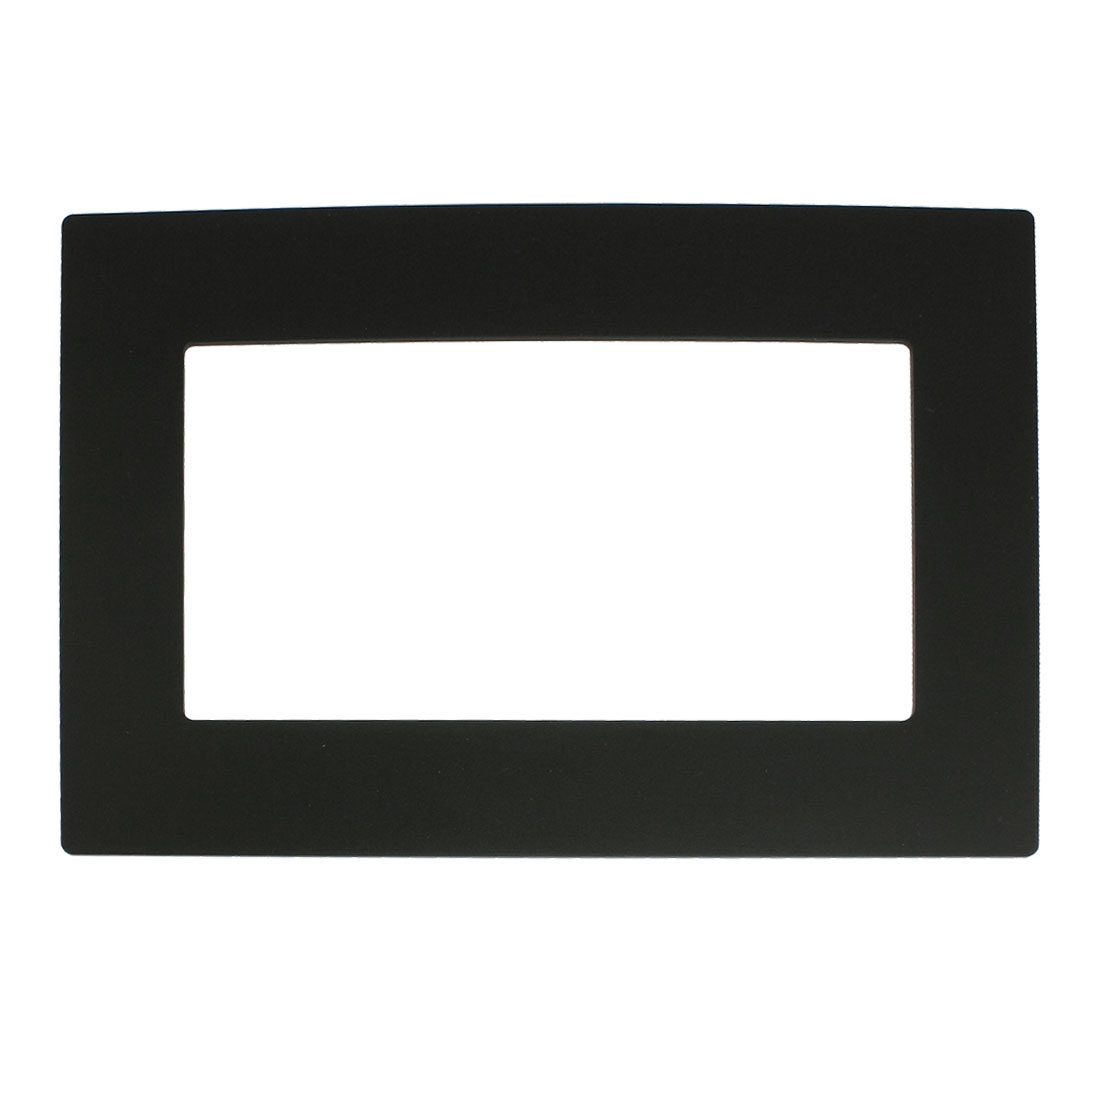 Universal Double Din Frame Trim Surround Black 230mm x 168mm